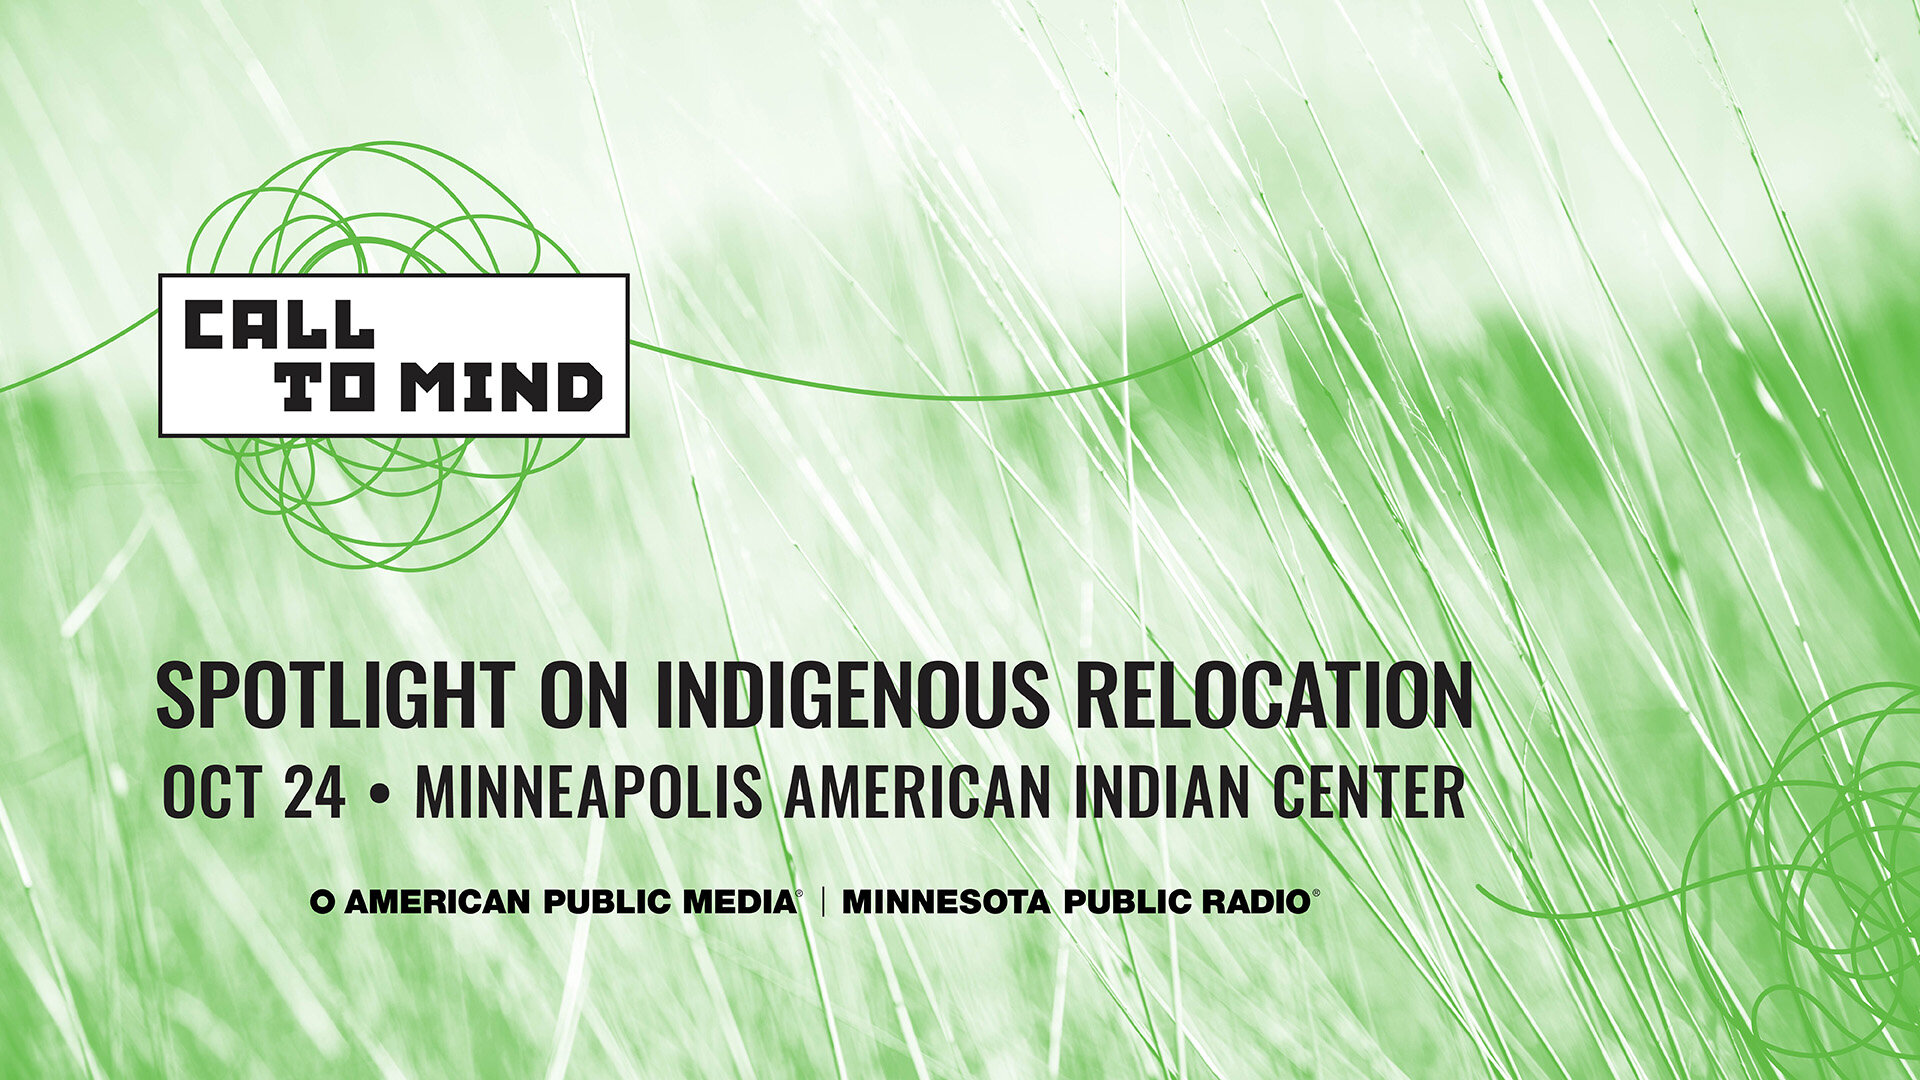 APM-0059-20 Spotlight on Indigenous Relocation_1920x1080_1.jpg